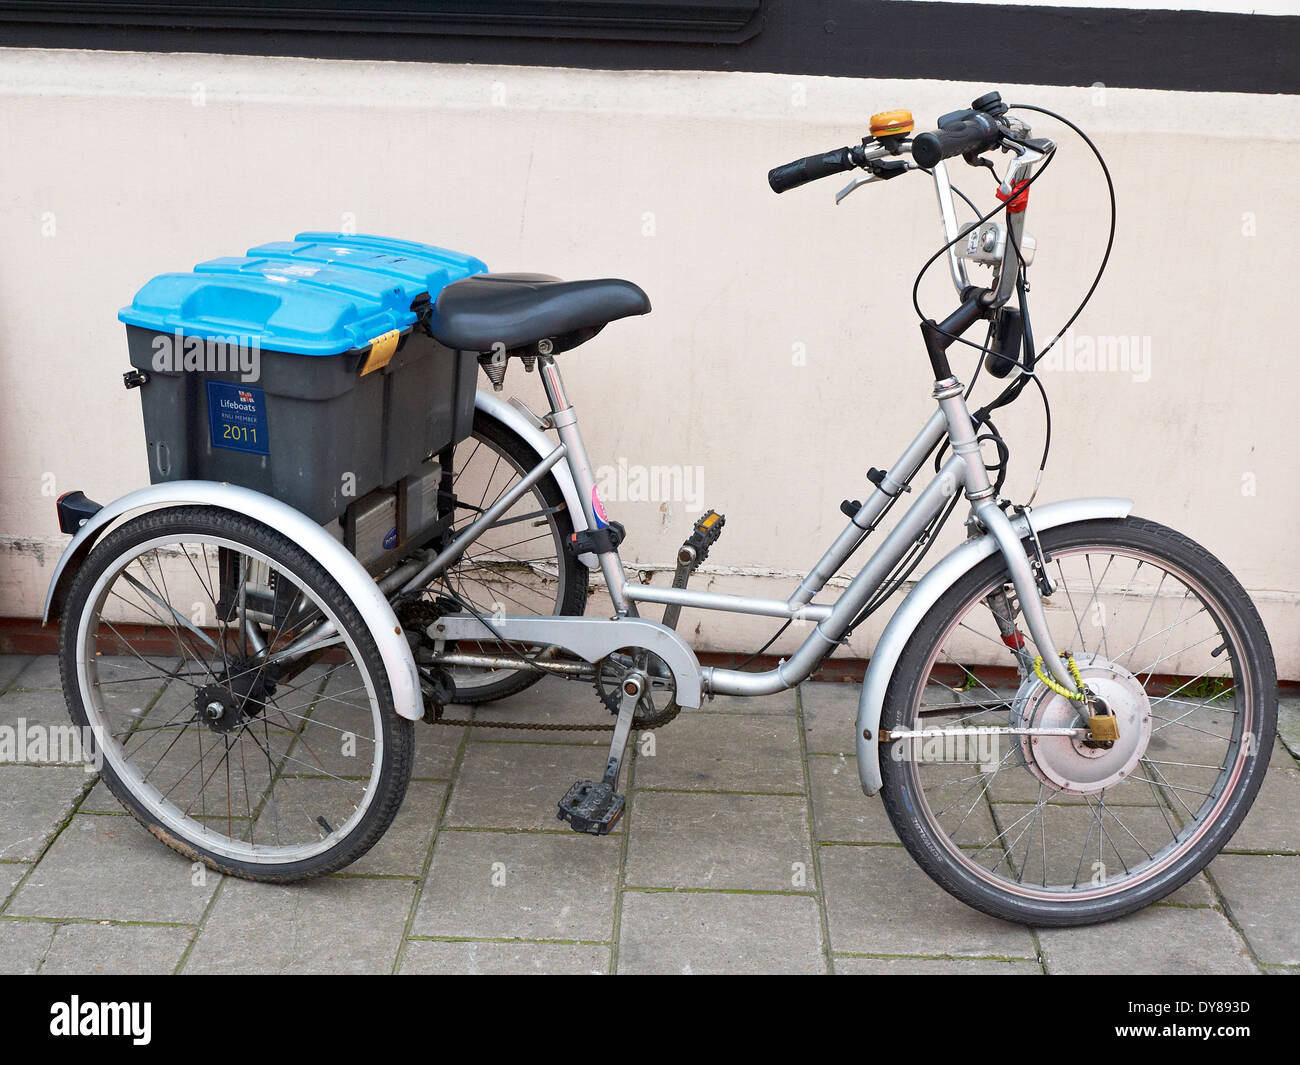 Tricycle parked on pavement UK - Stock Image